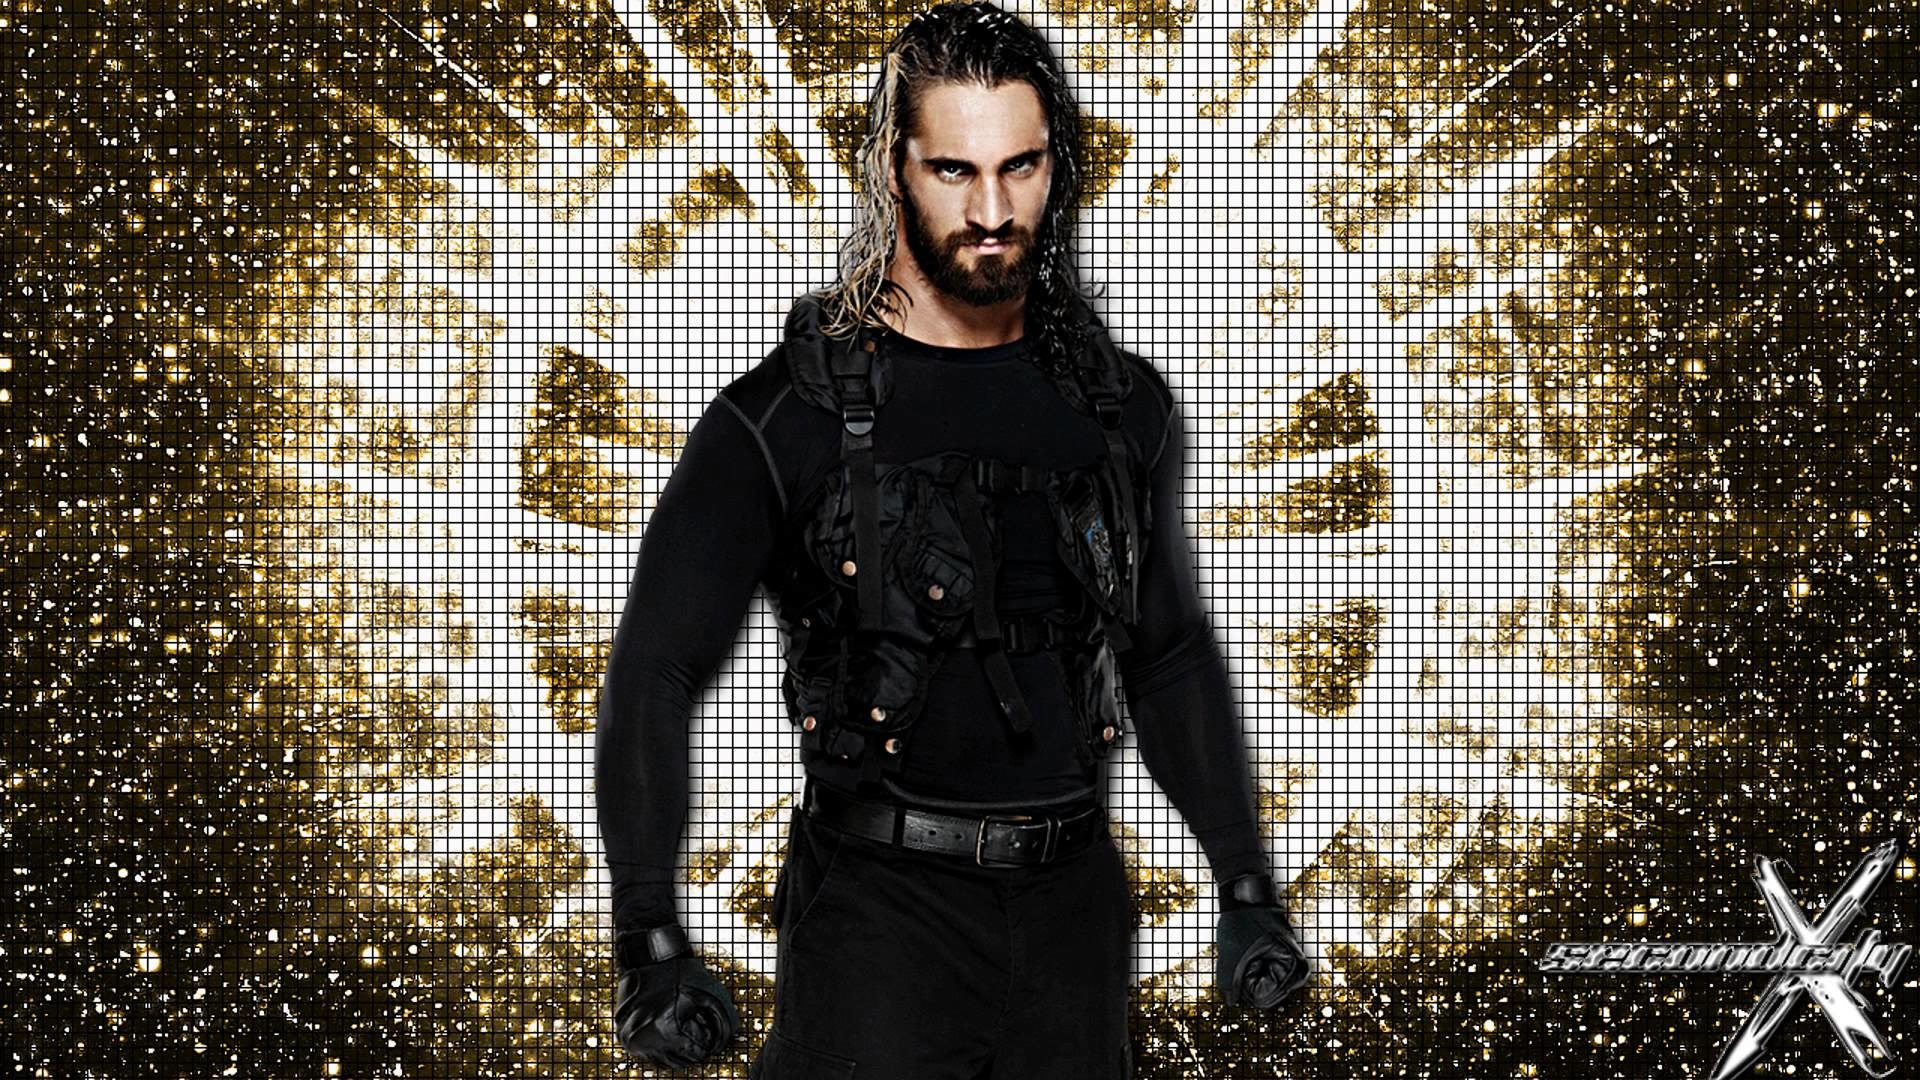 wwe superstars images Seth Rollins HD wallpaper and background .